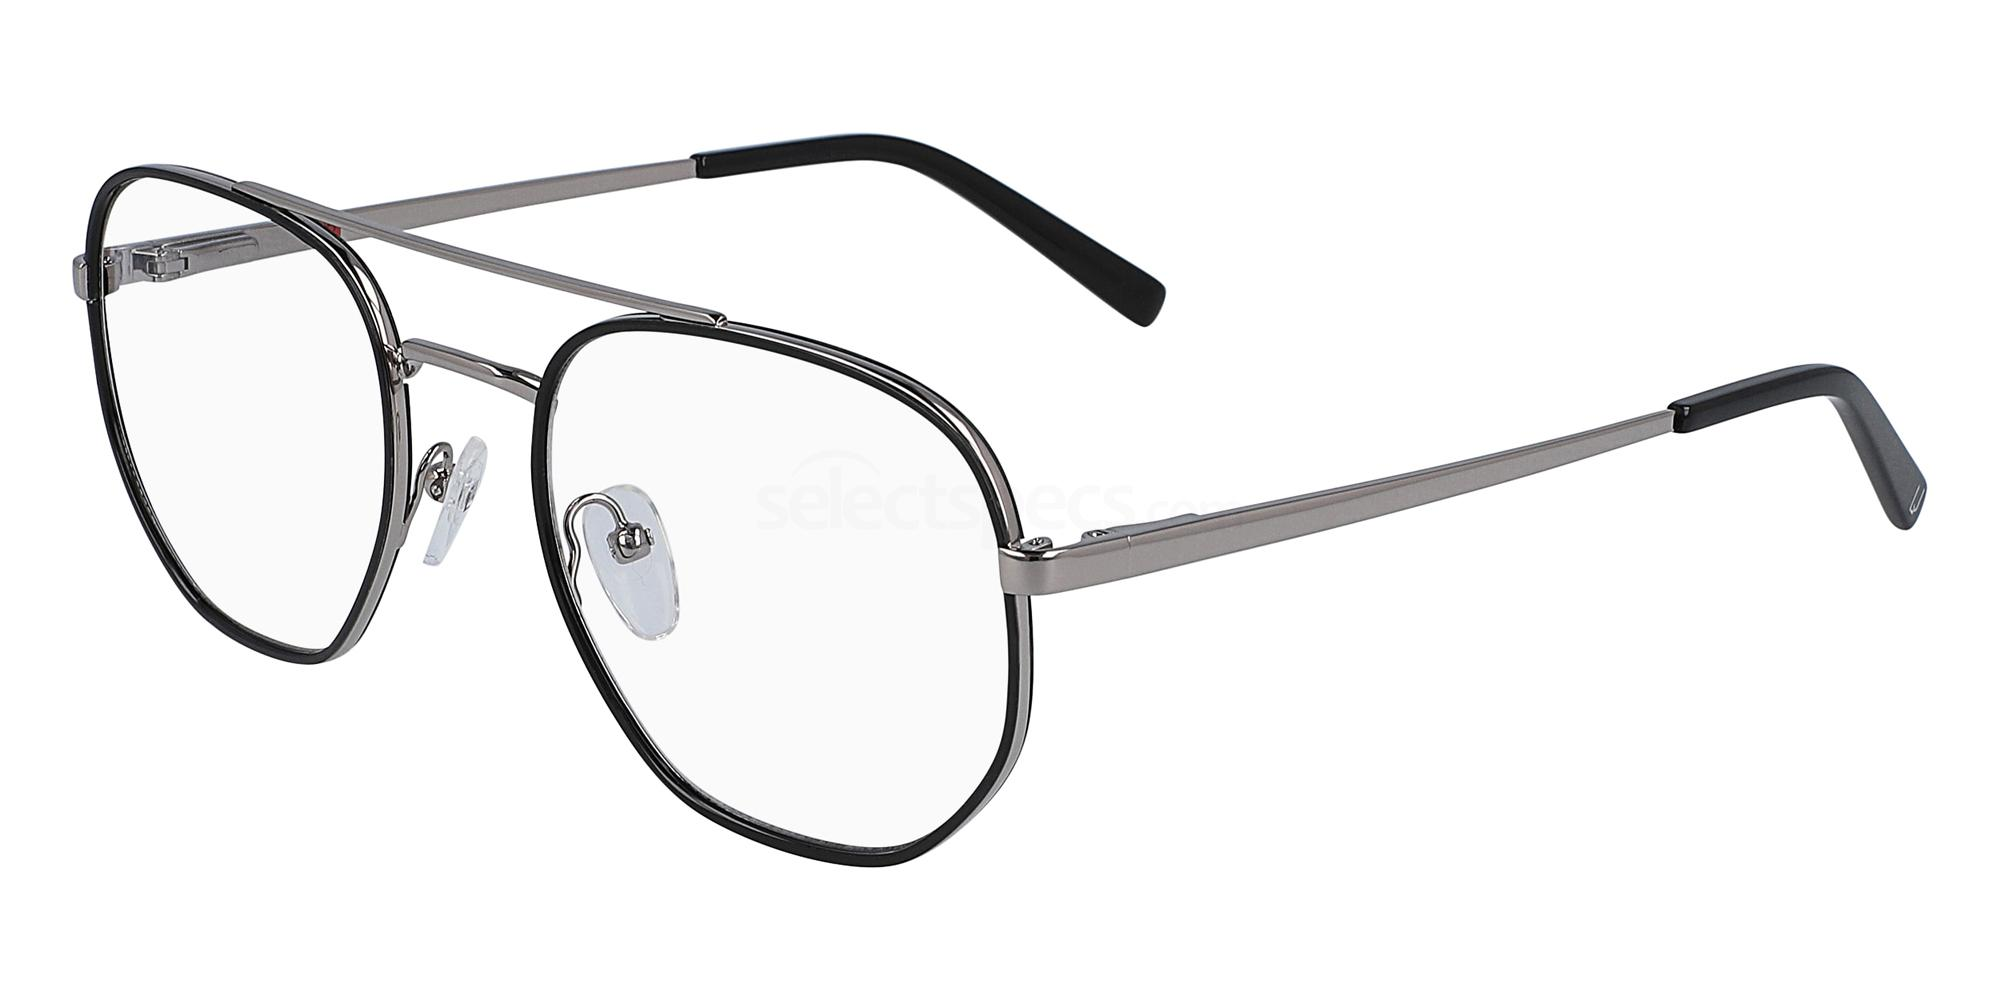 043 LJ2138 Glasses, Liu Jo